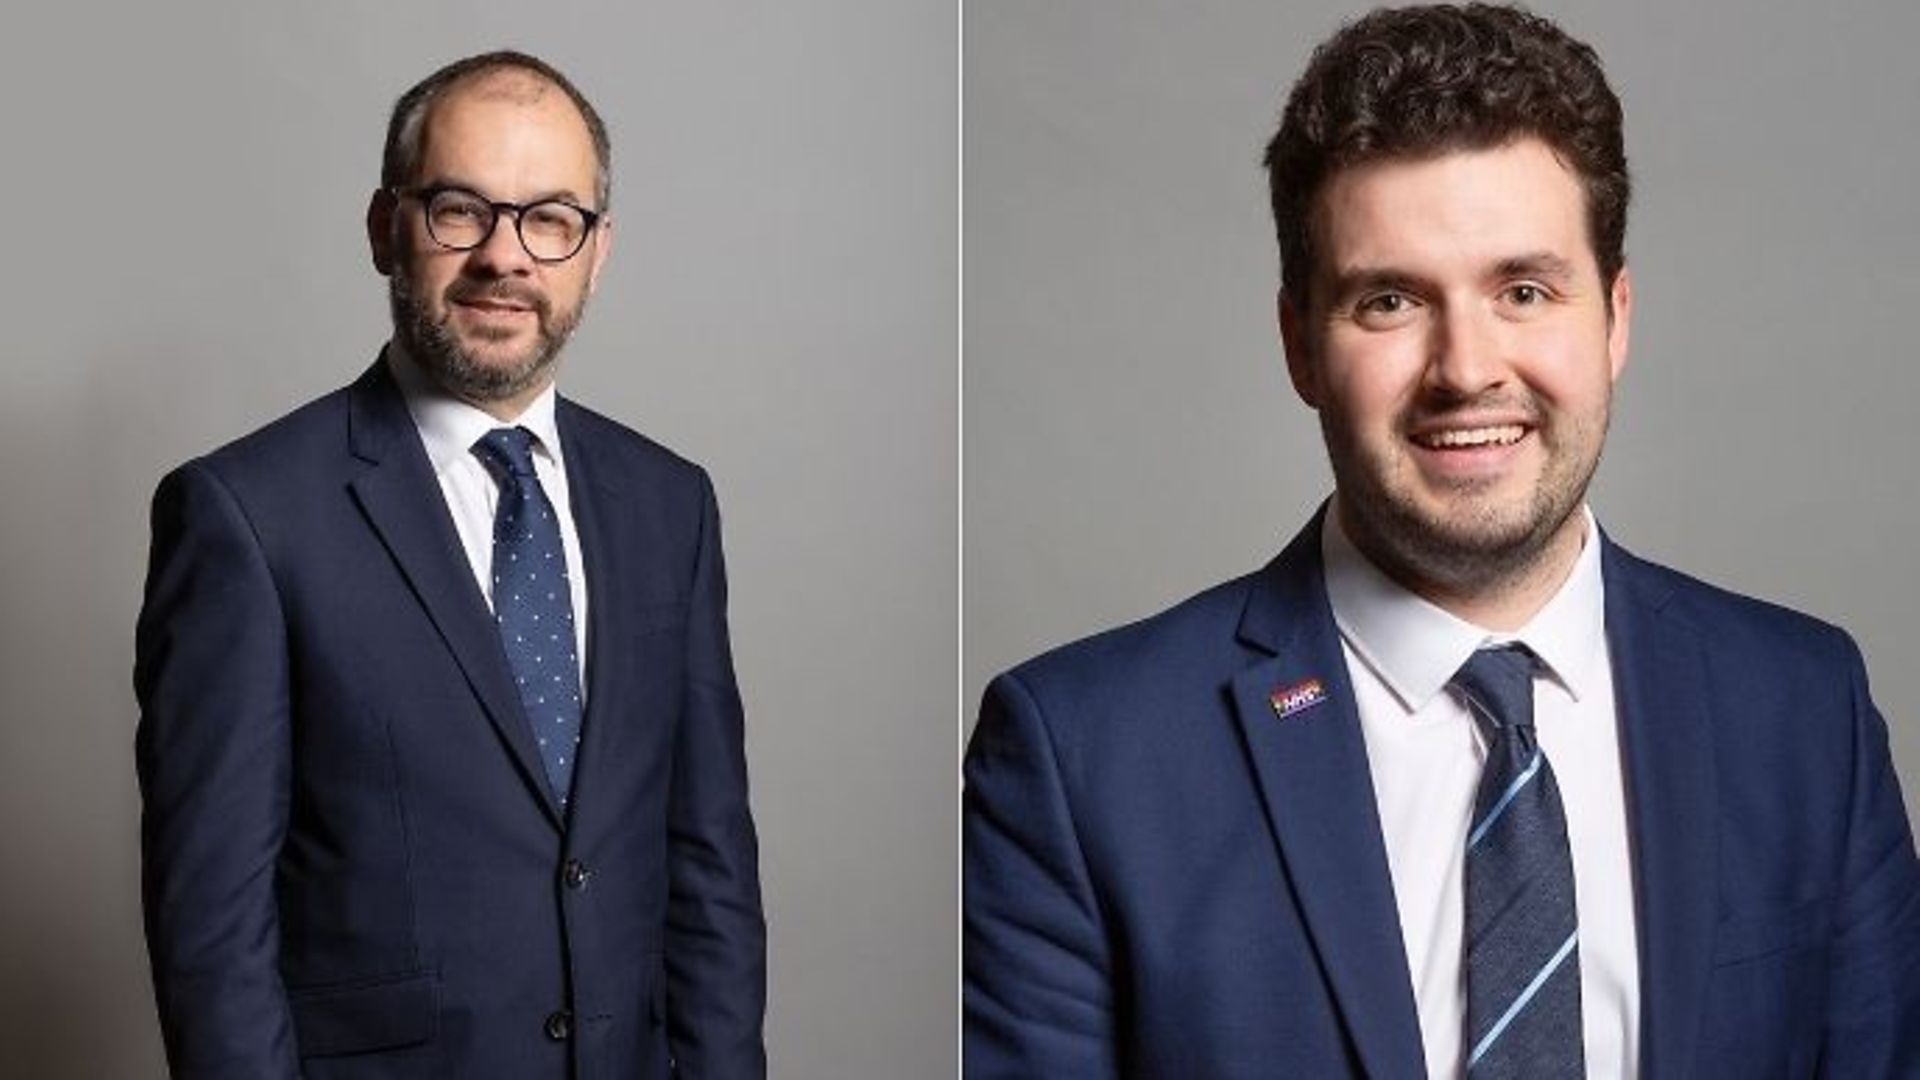 Parliamentary under-secretary for Labour Paul Scully (L) and Carshalton and Wallington MP Elliot Colburn - Credit: UK parliament